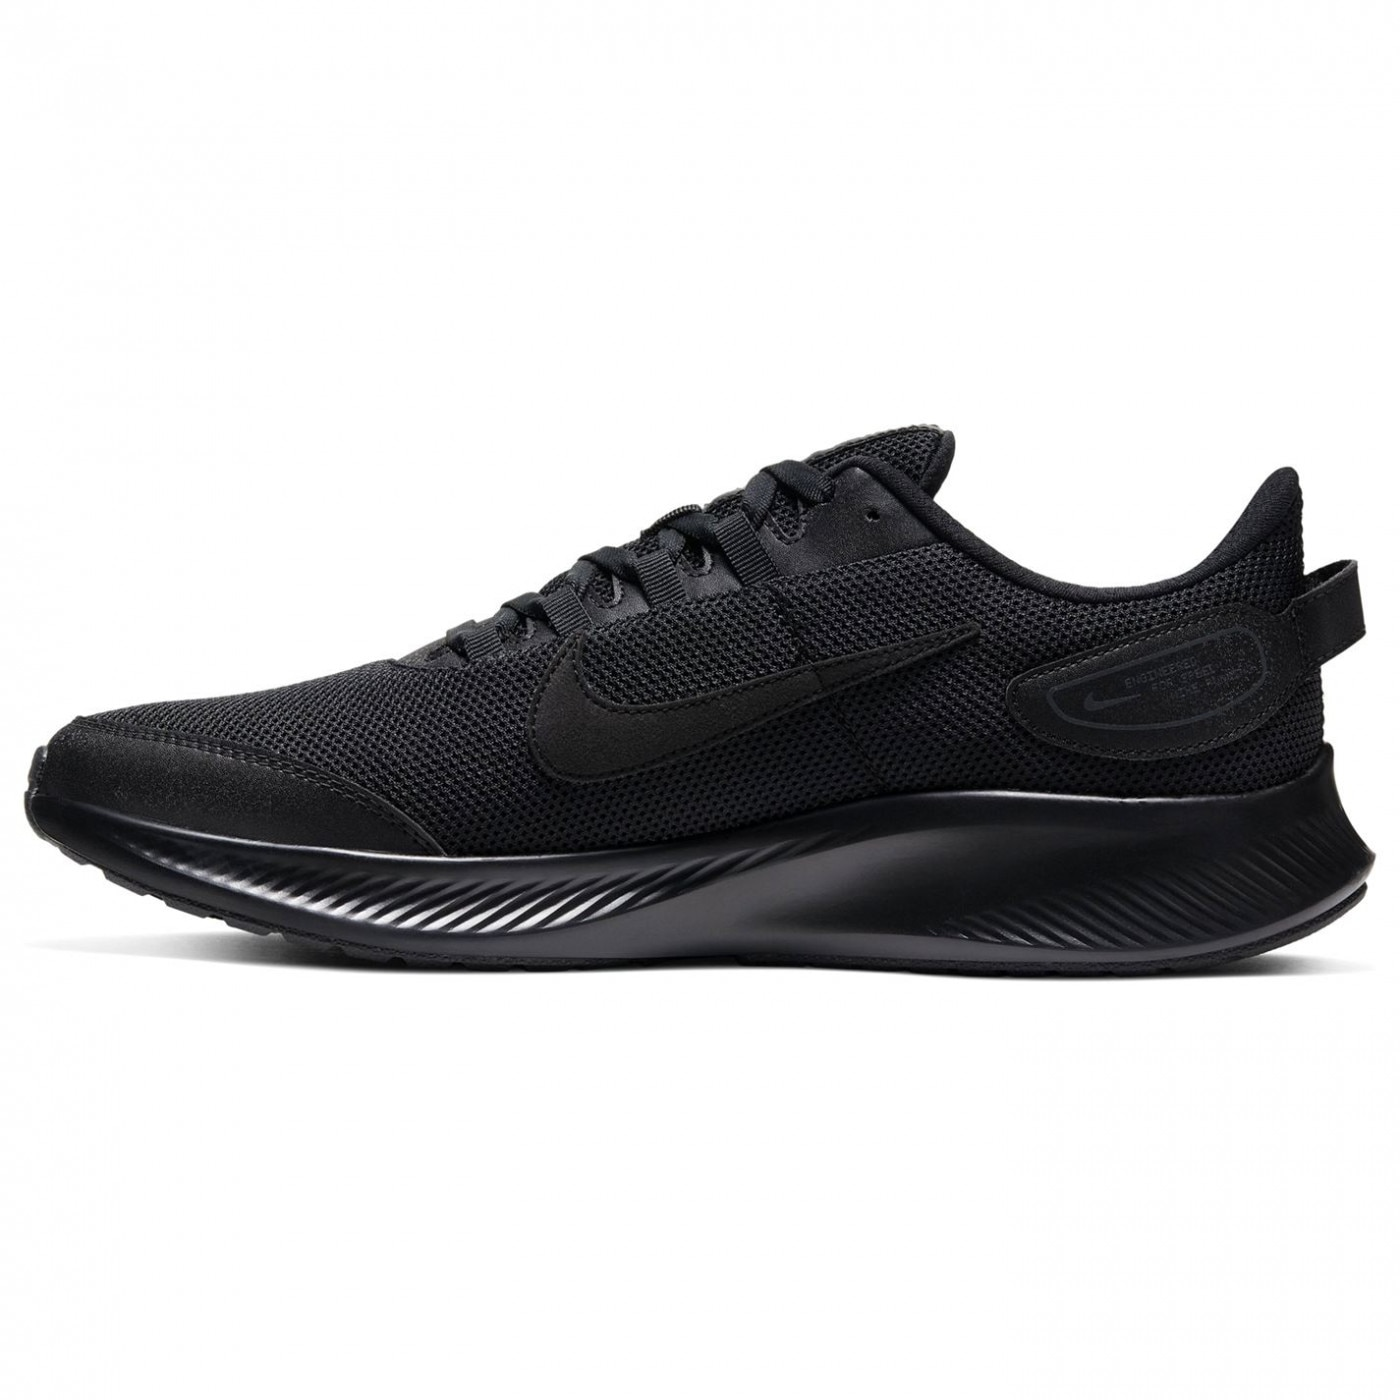 Men's Trainers Nike Run All Day 2